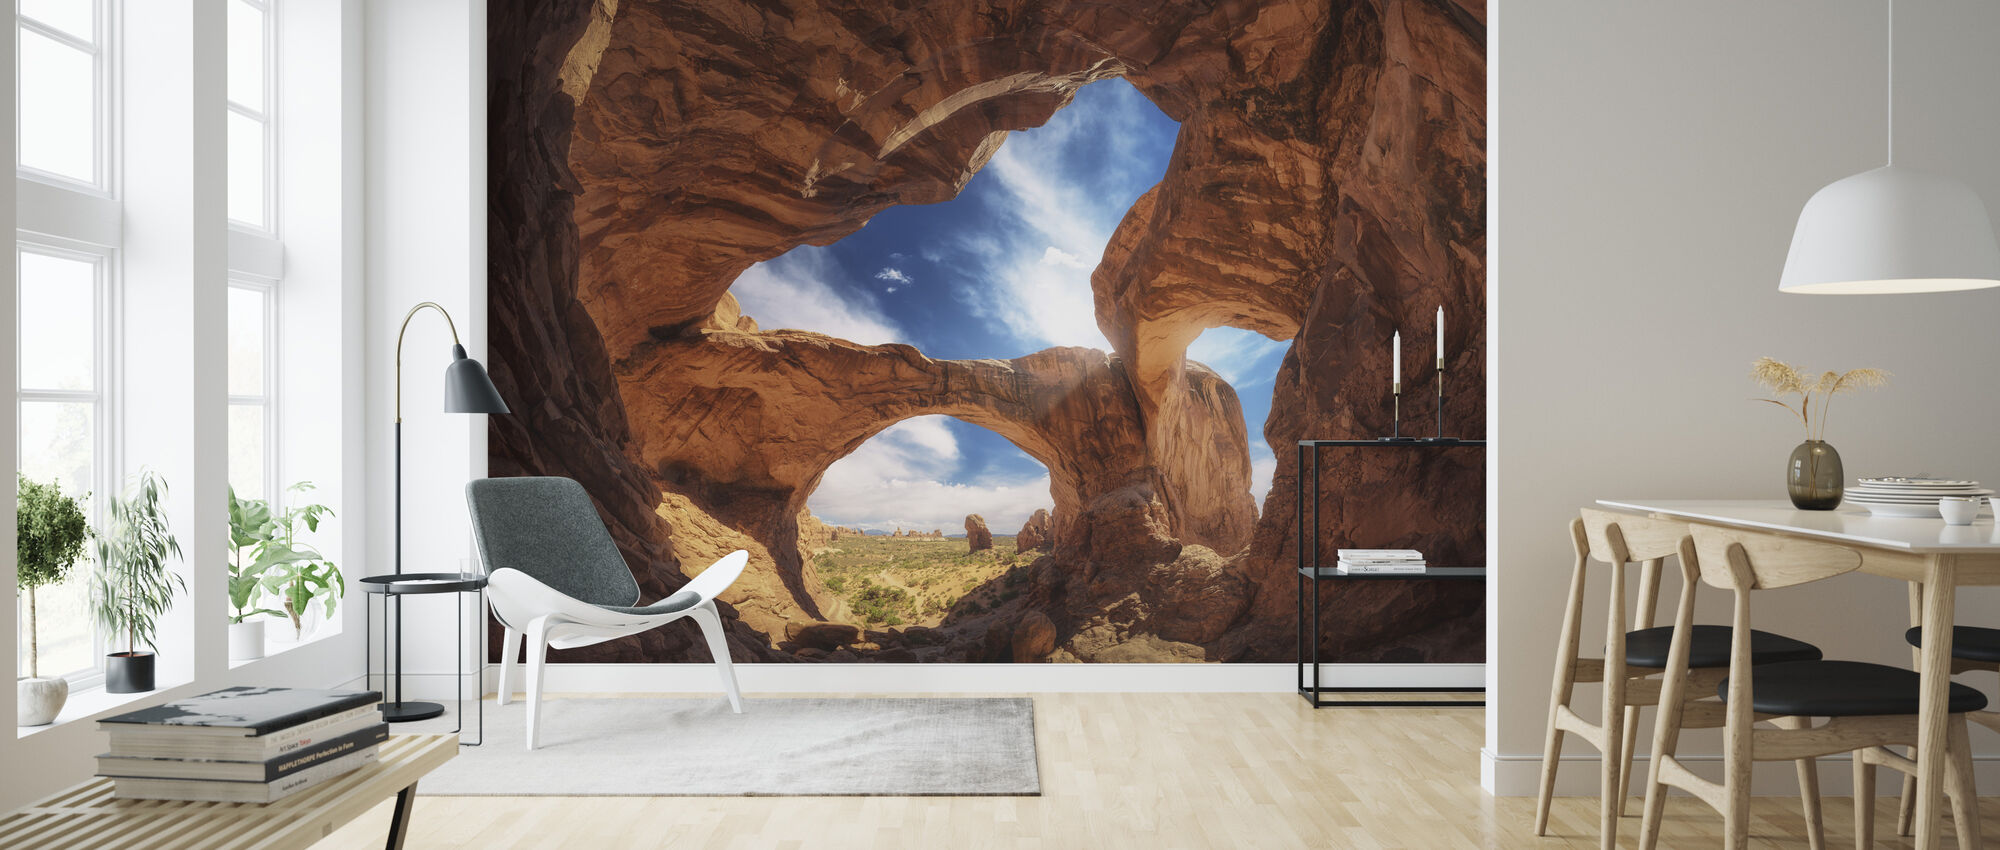 Double Arch - Wallpaper - Living Room